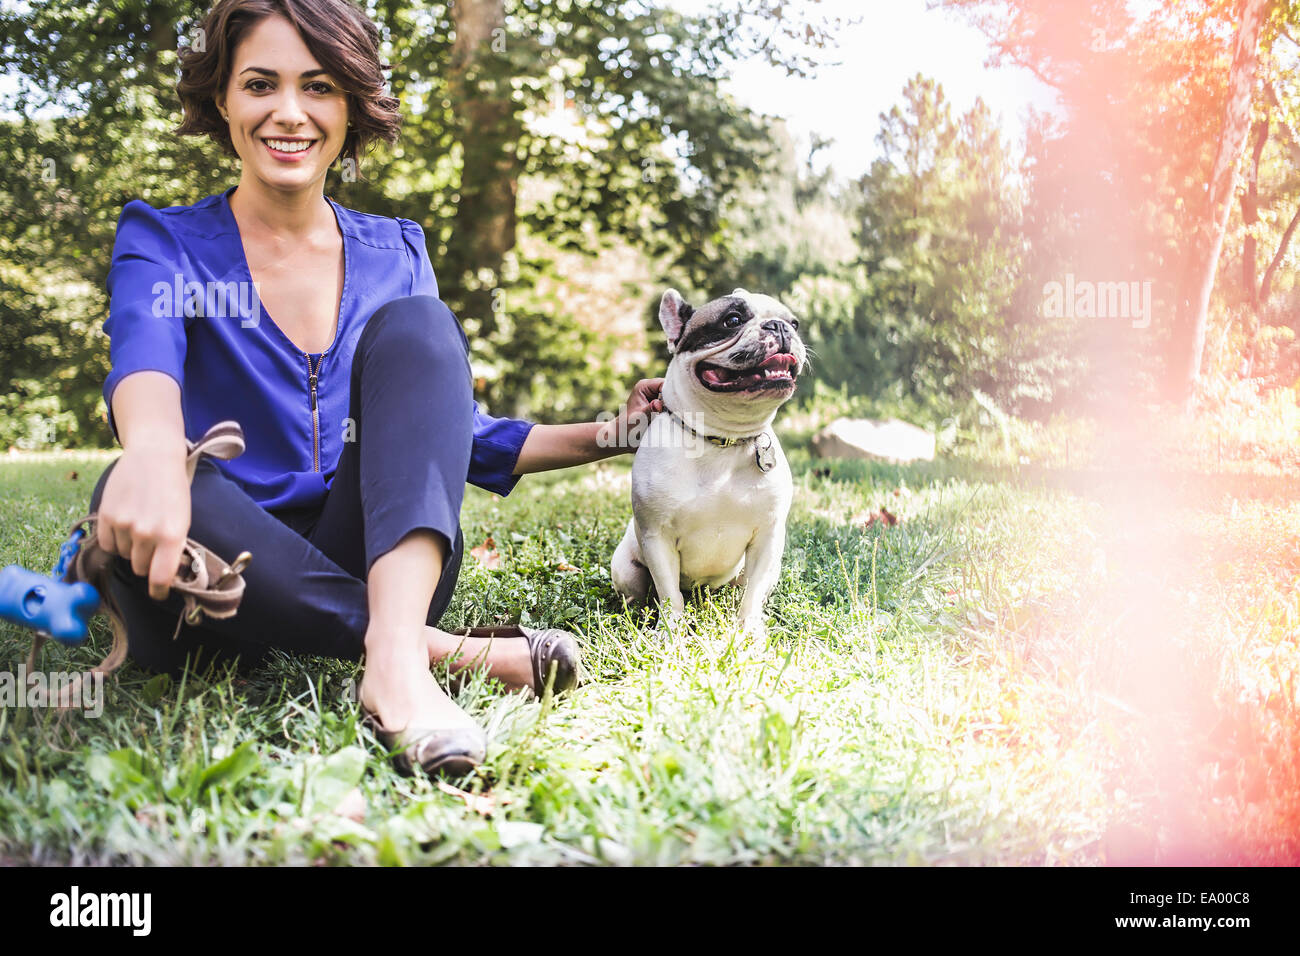 Young woman with dog in city park - Stock Image